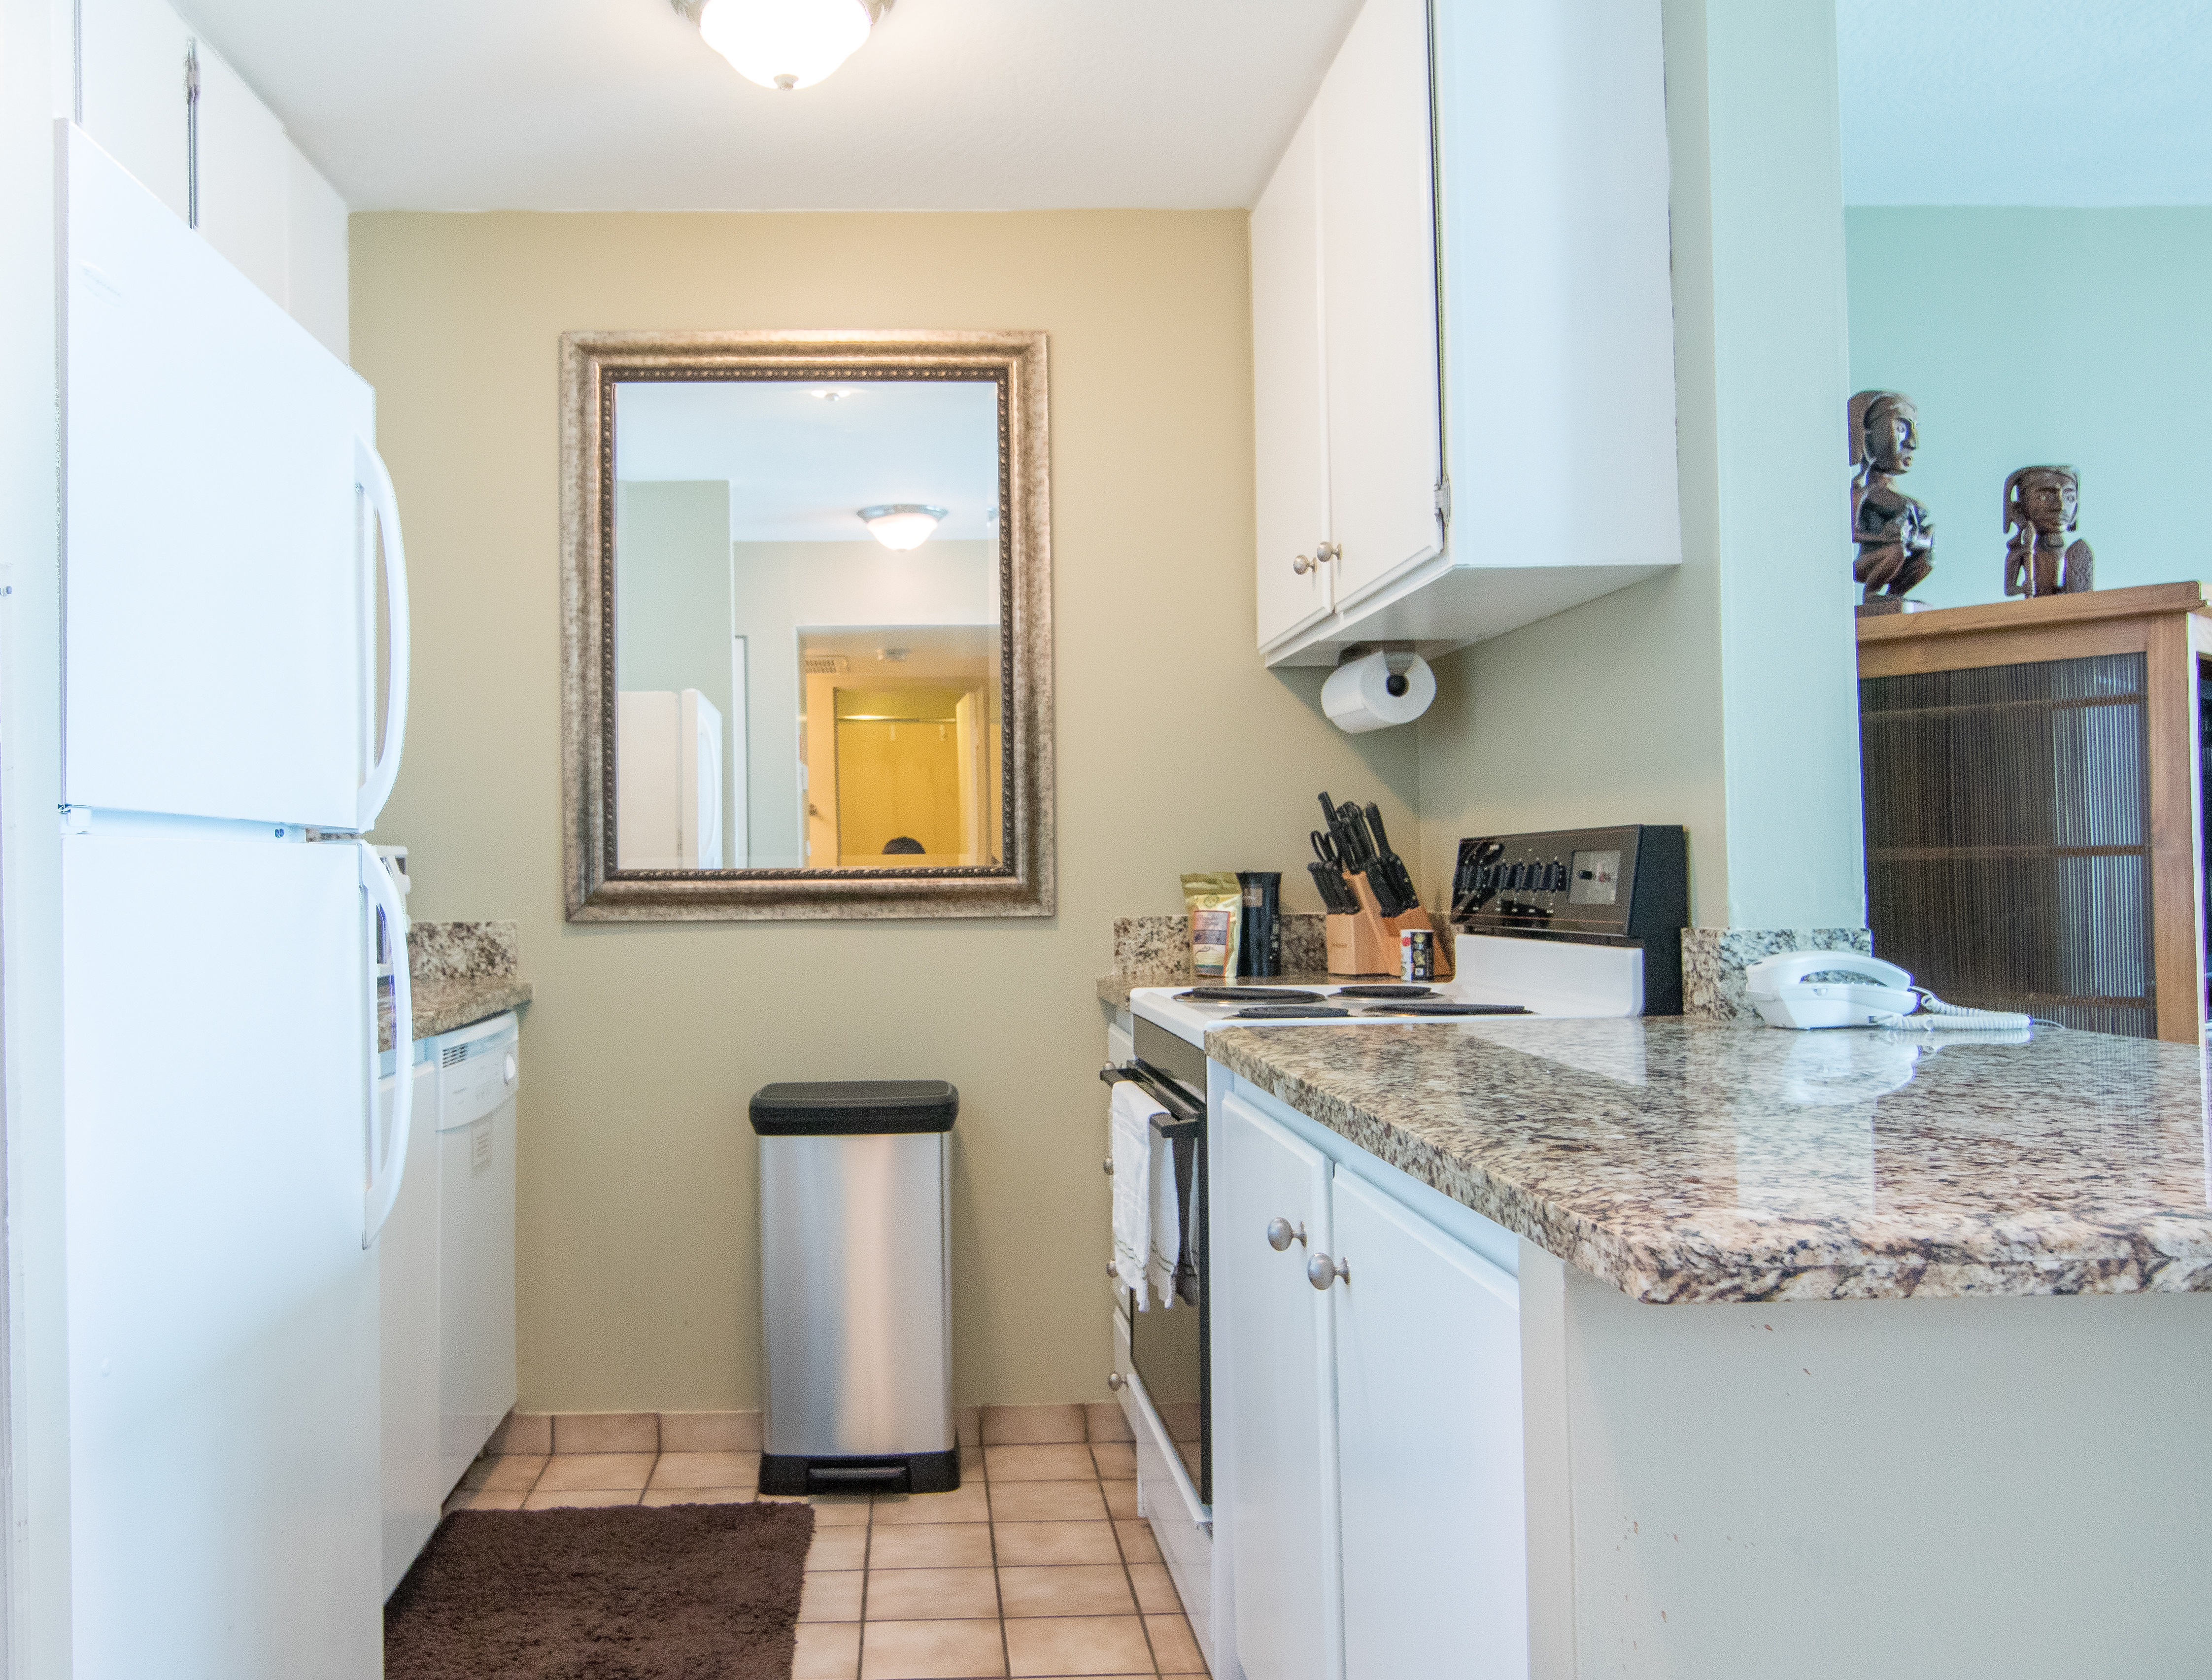 Updated kitchen with all of the large and small appliances you need.